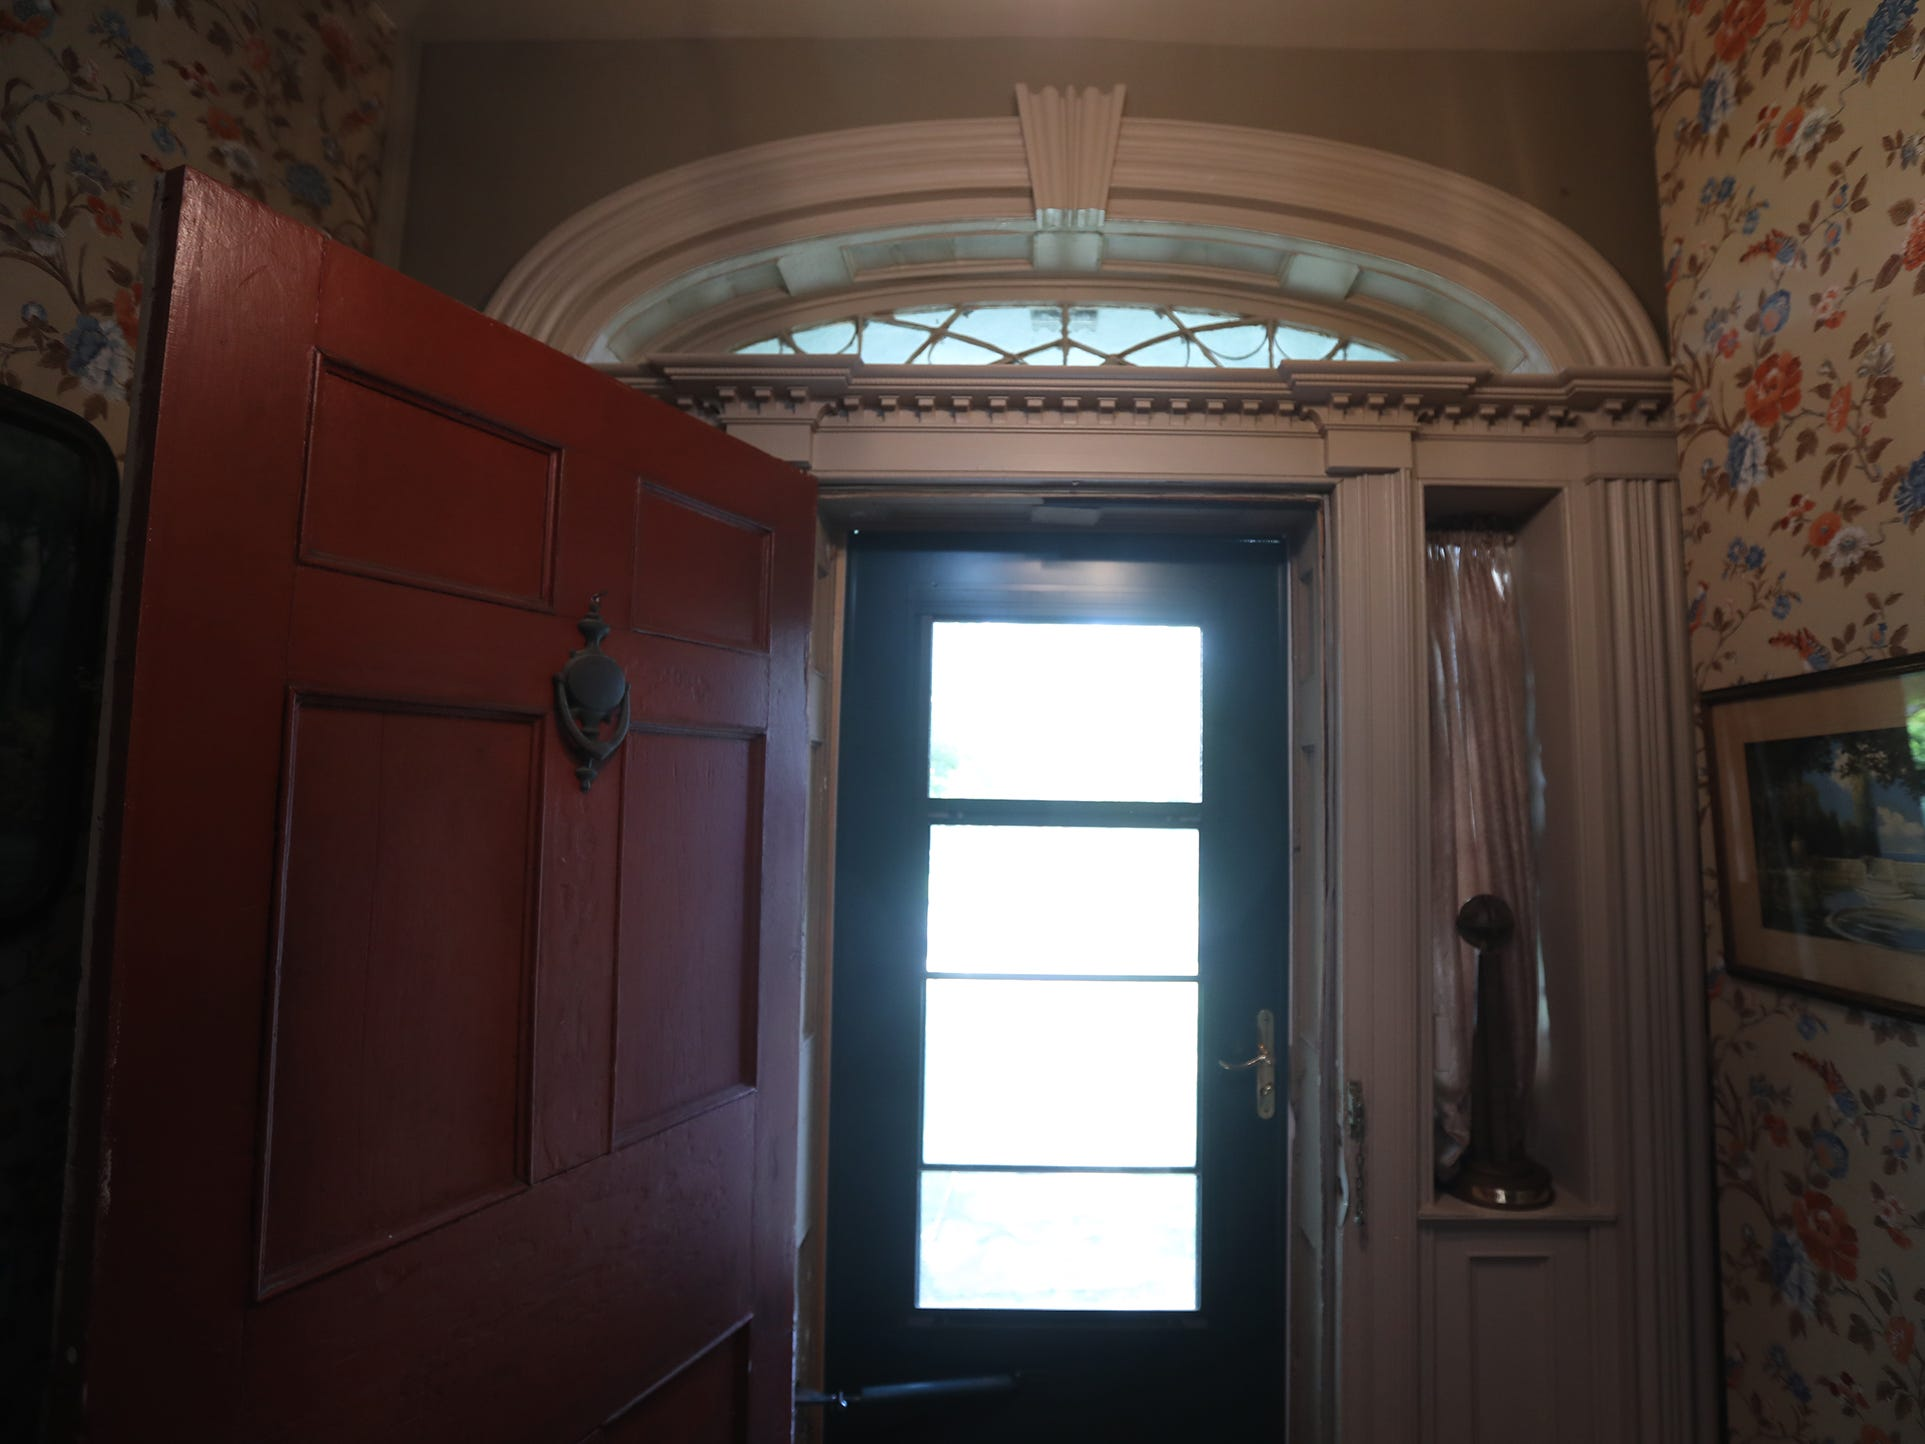 The window above the door called a fan light, is one of the features of a typical Federal-style house.